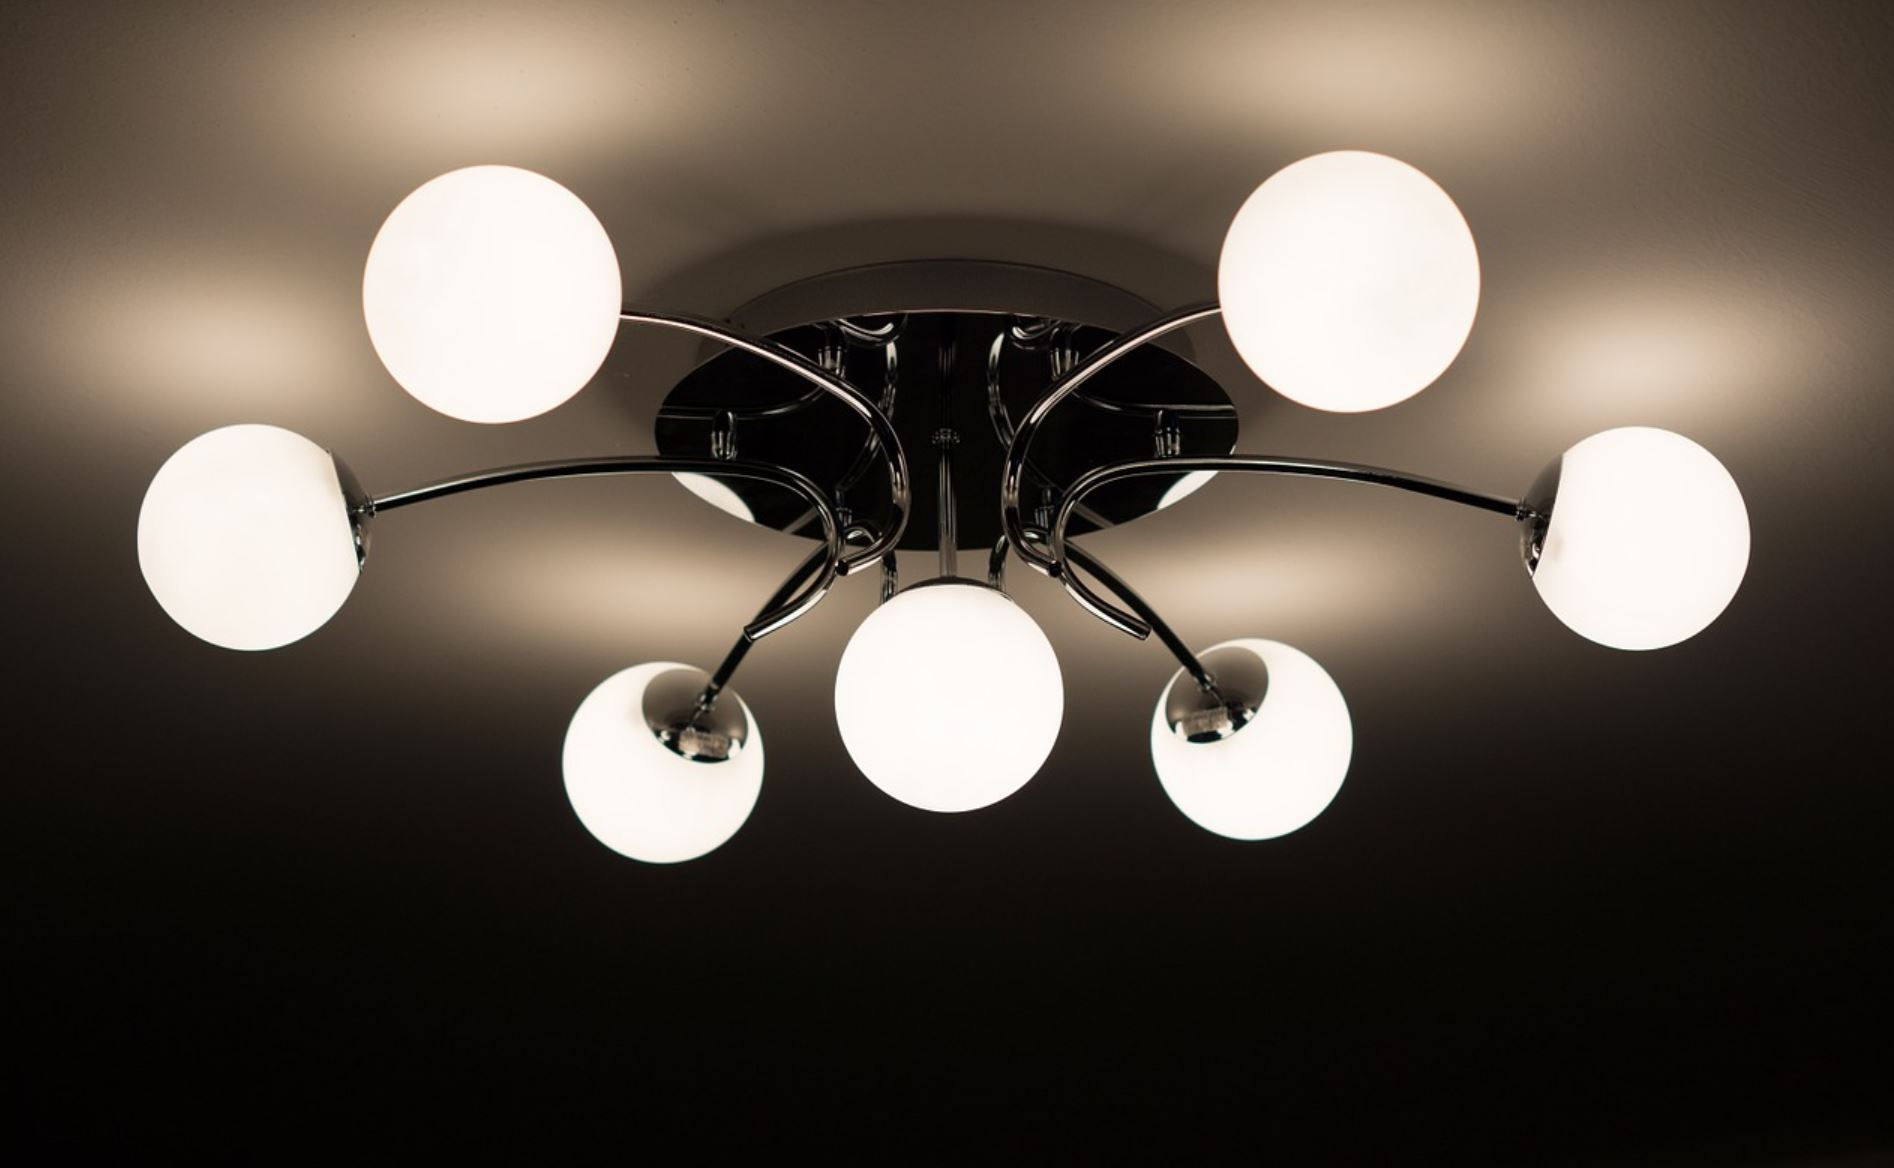 """how-""""smart""""-bulbs-track-your-behavior-(even-when-lights-are-turned-off)-and-why-manufacturers-want-your-data-–-activist-post"""